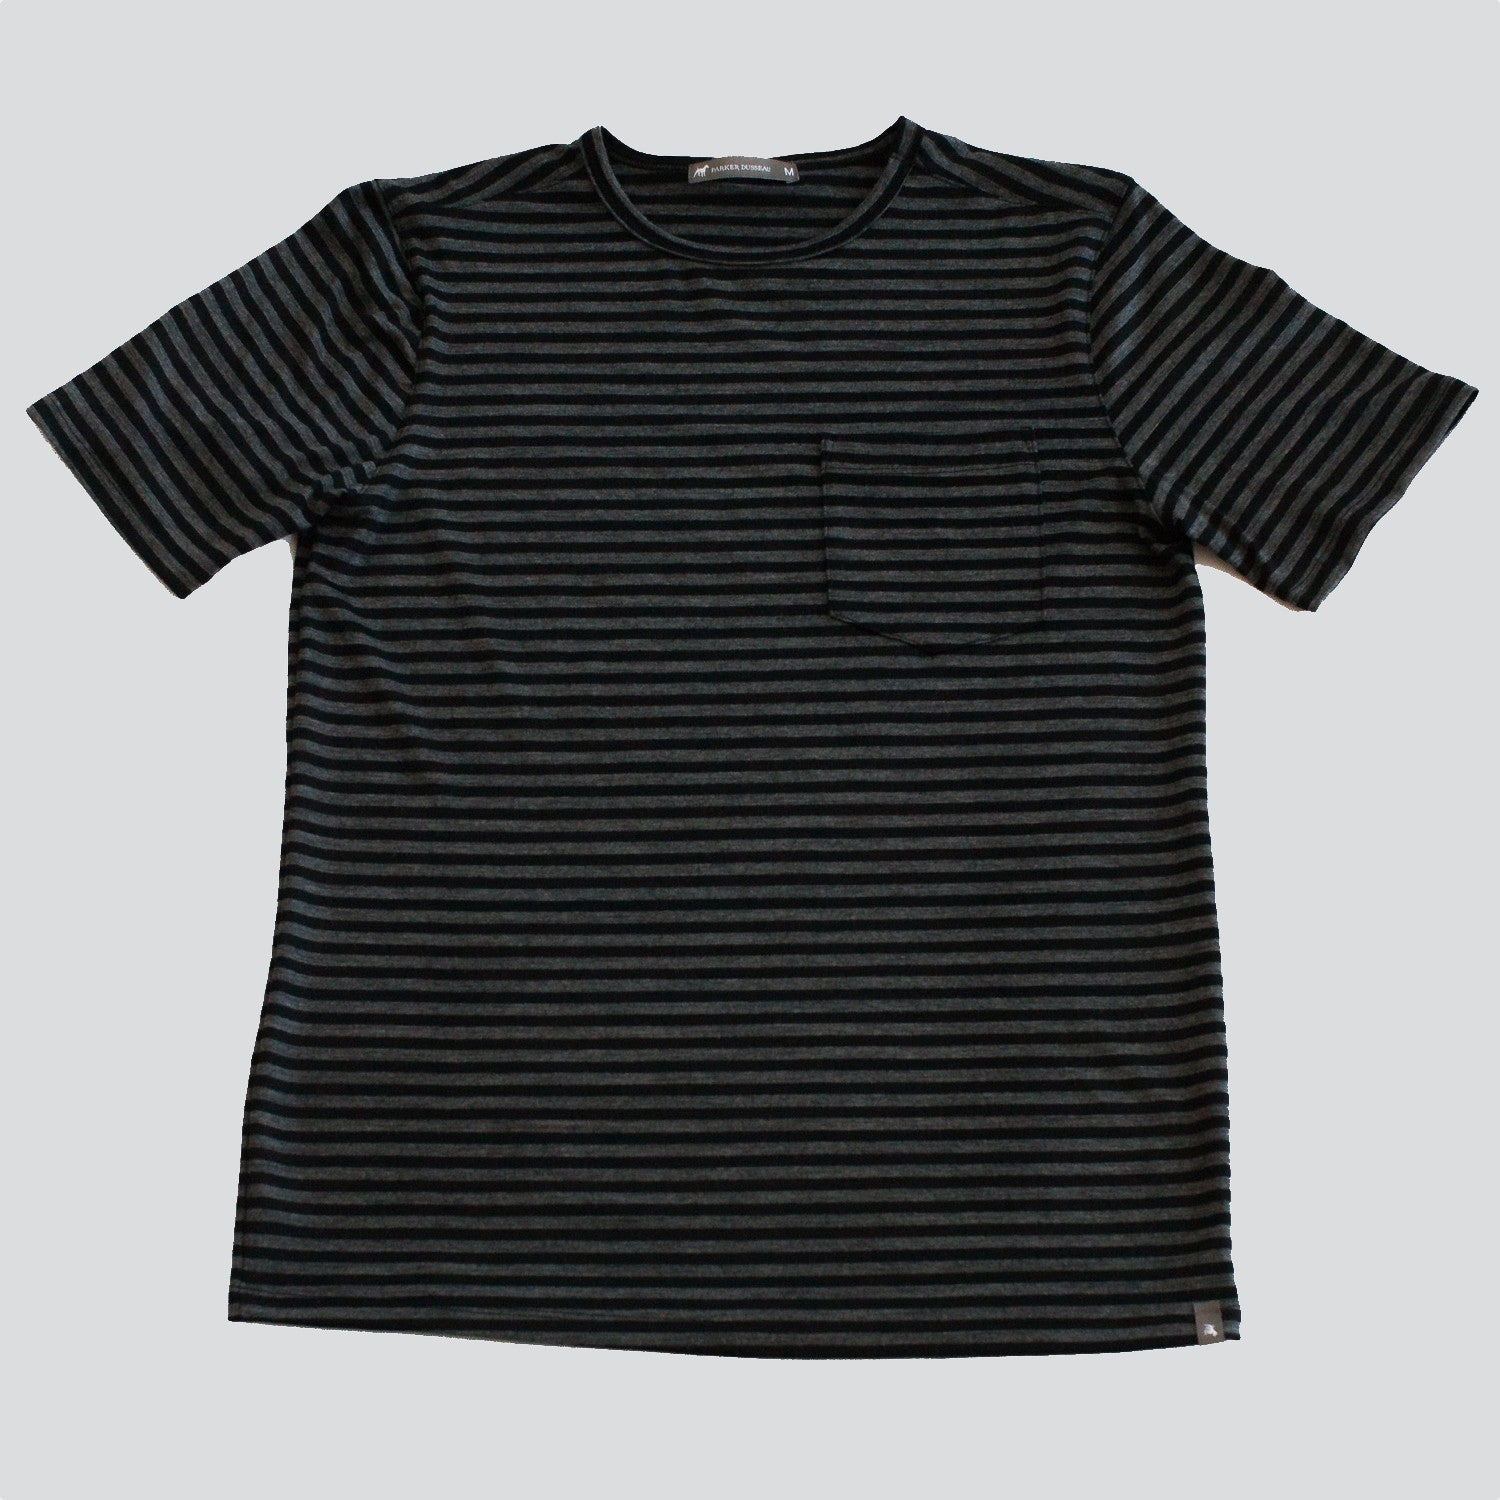 Merino Wool Single Pocket Tee - Charcoal Stripe Short Sleeve Merino Tee- Parker Dusseau : Functional Menswear Essentials for the Always Ready Lifestyle. Based in San Francisco, California